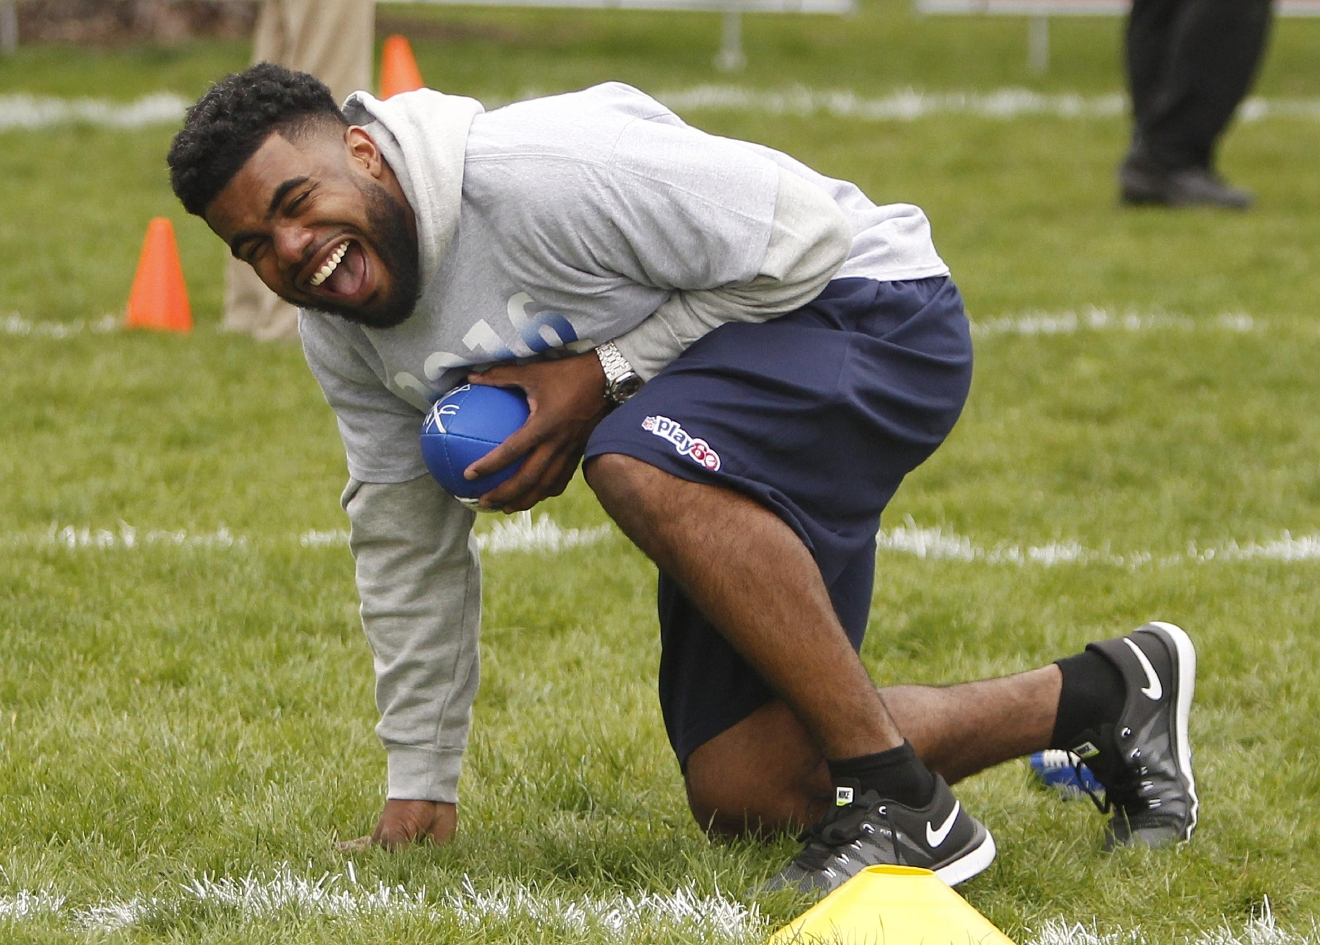 Ohio State's Ezekiel Elliott kneels as he laughs with other athletes during an NFL Play 60 event at Grant Park, Wednesday, April 27, 2016, in Chicago before Thursday's first round of the NFL football draft. (AP Photo/Kiichiro Sato)